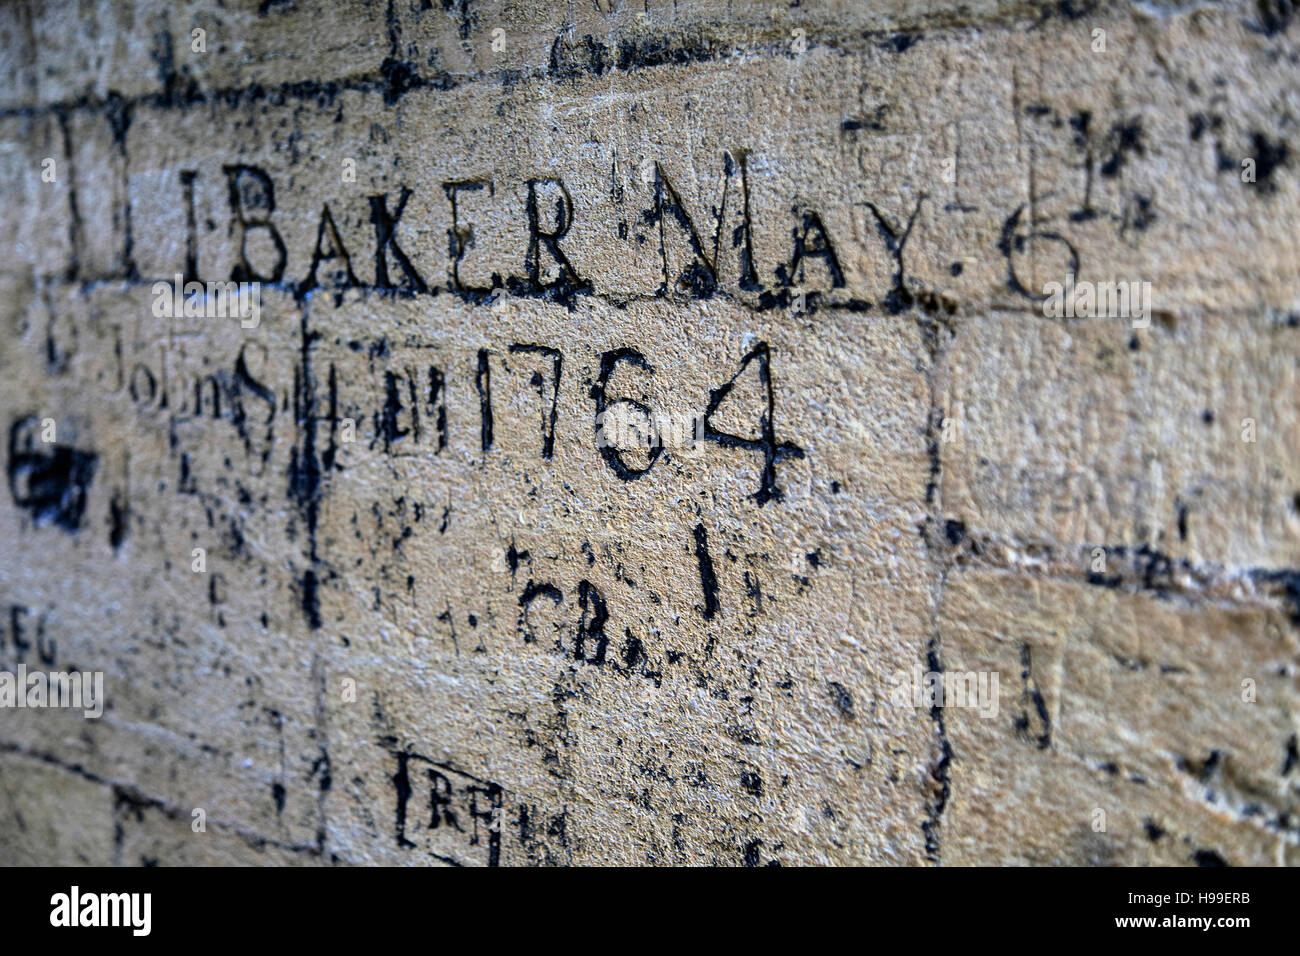 Old graffiti names carved on wall university church of st mary the virgin oxford england uk